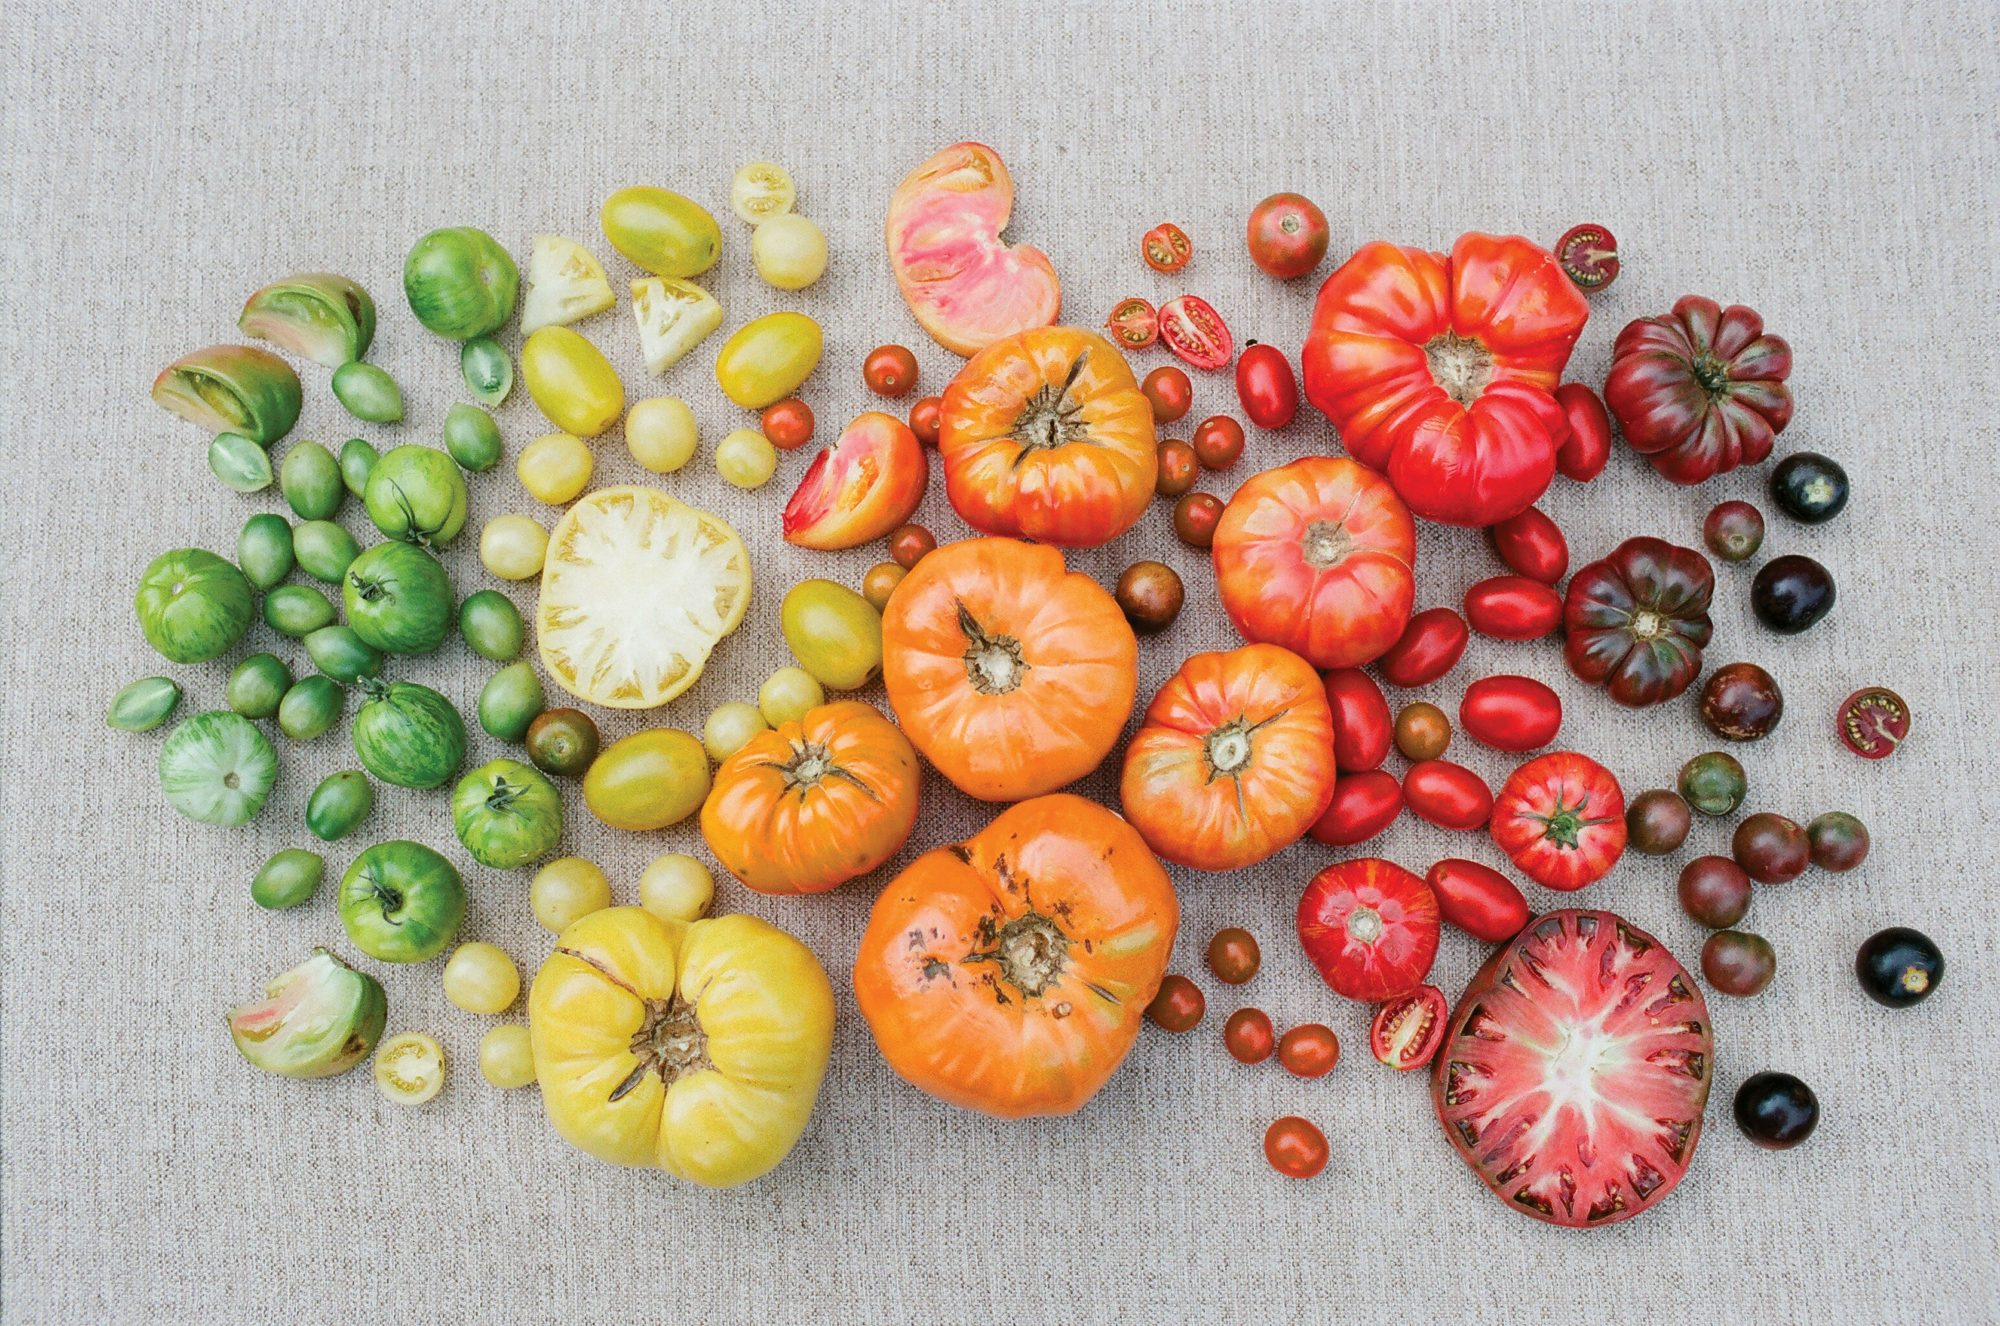 Heirloom Tomato Shades